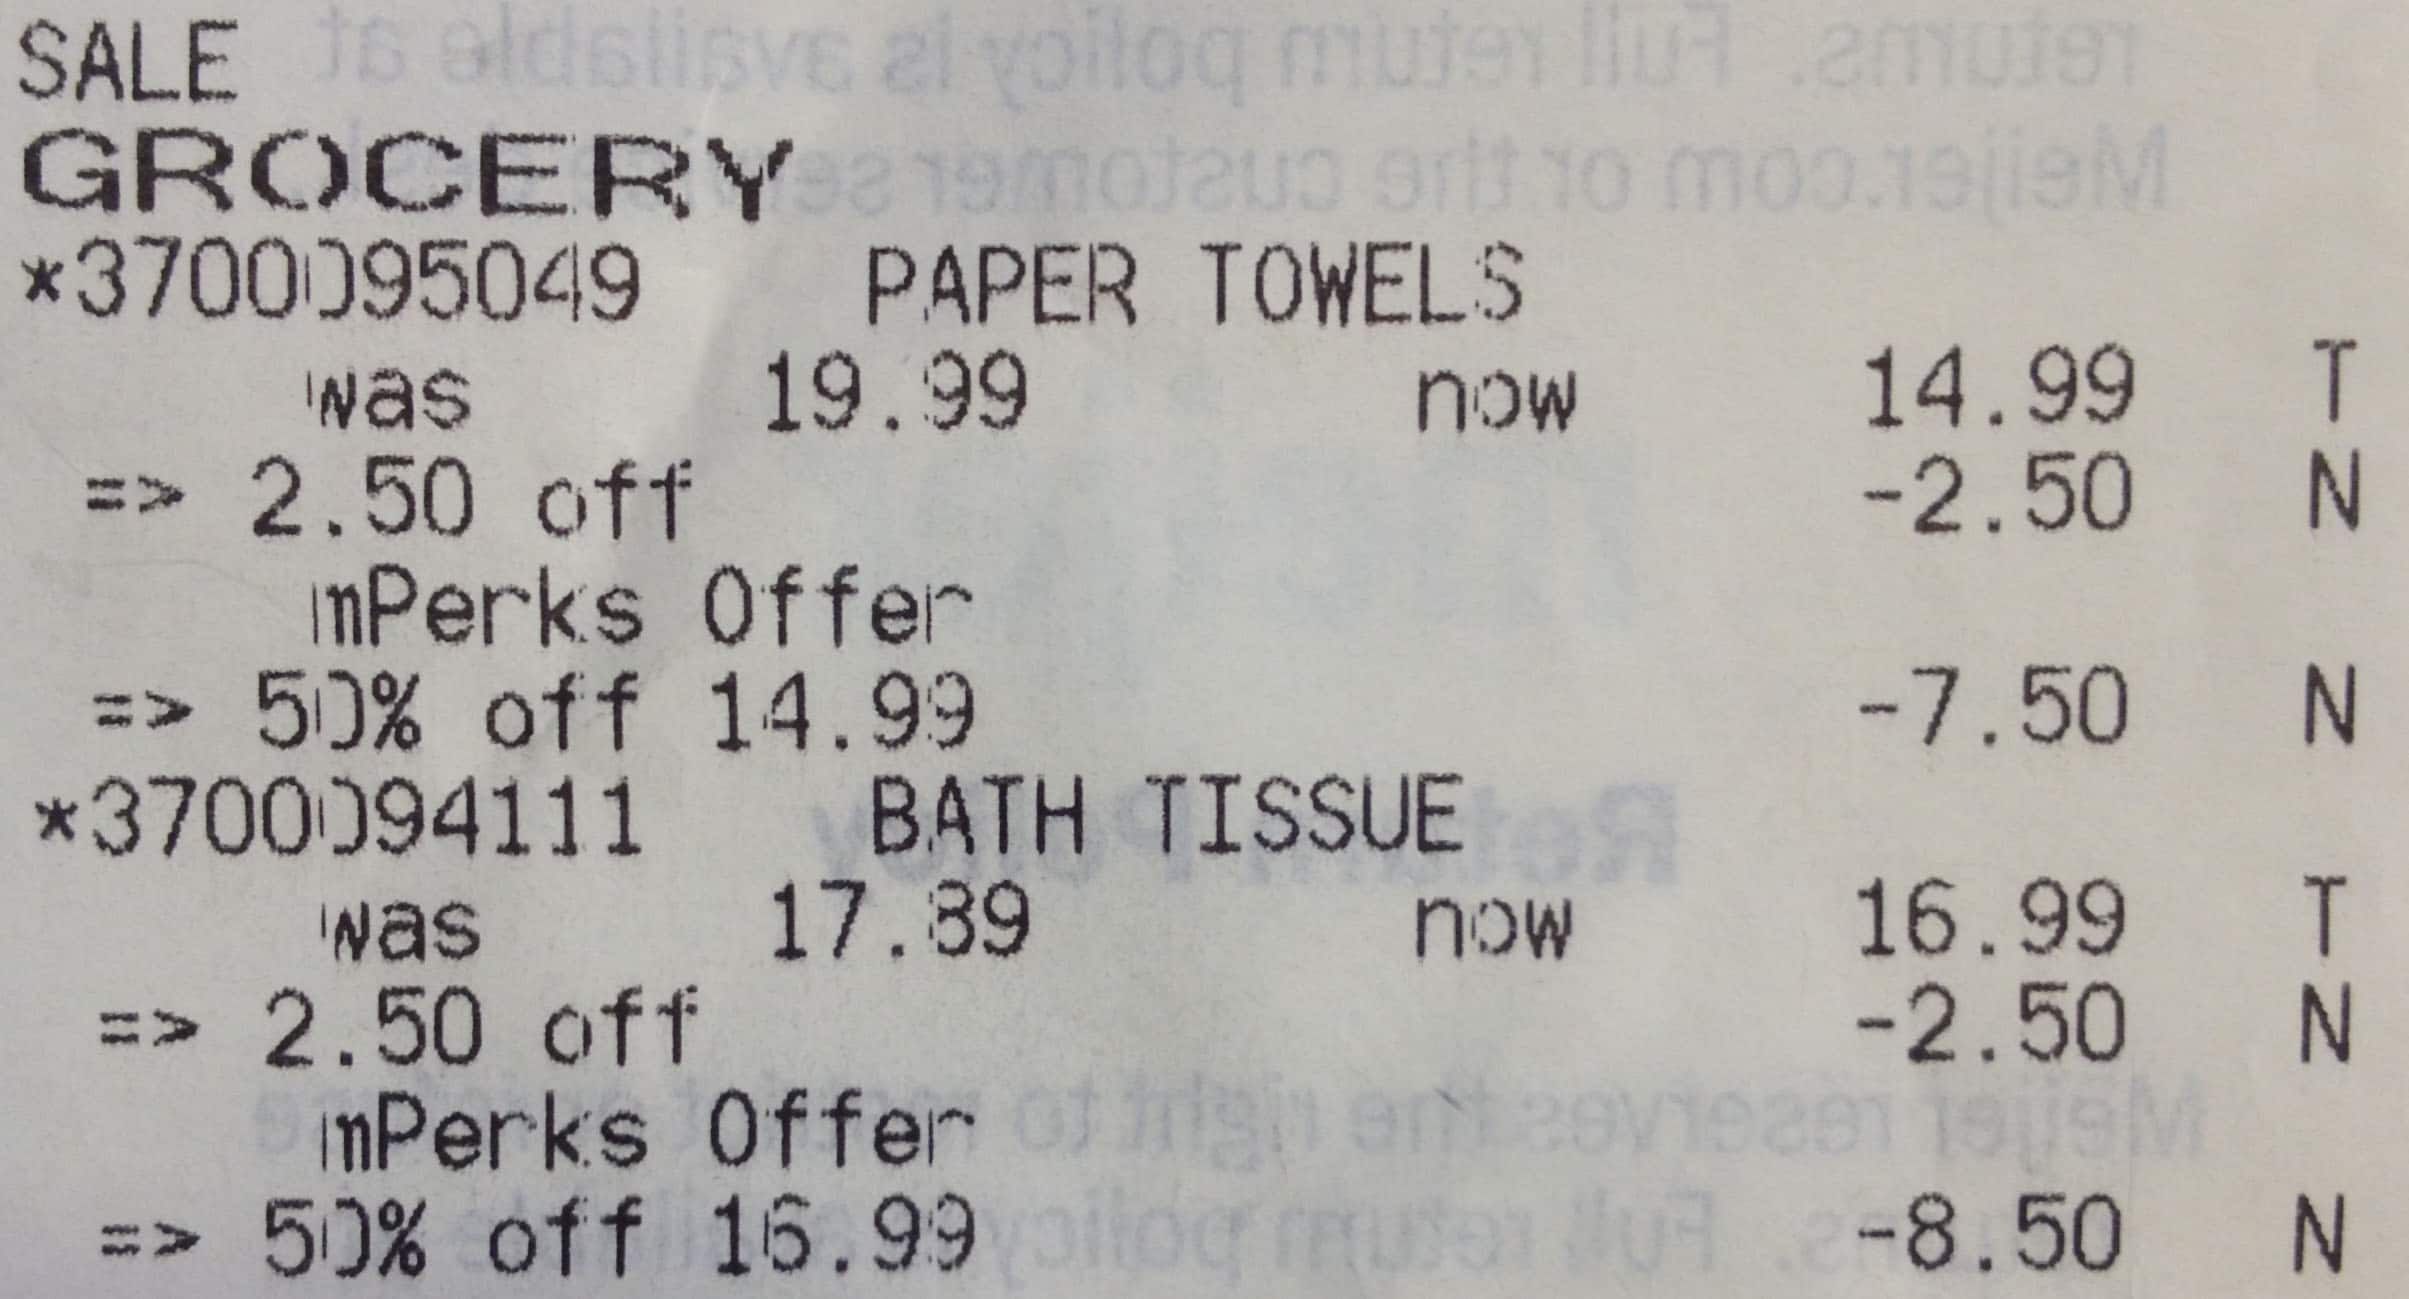 Meijer (In-Store): Bounty/Charmin/Puffs Paper Products 50% off with mPerks coupons (YMMV)